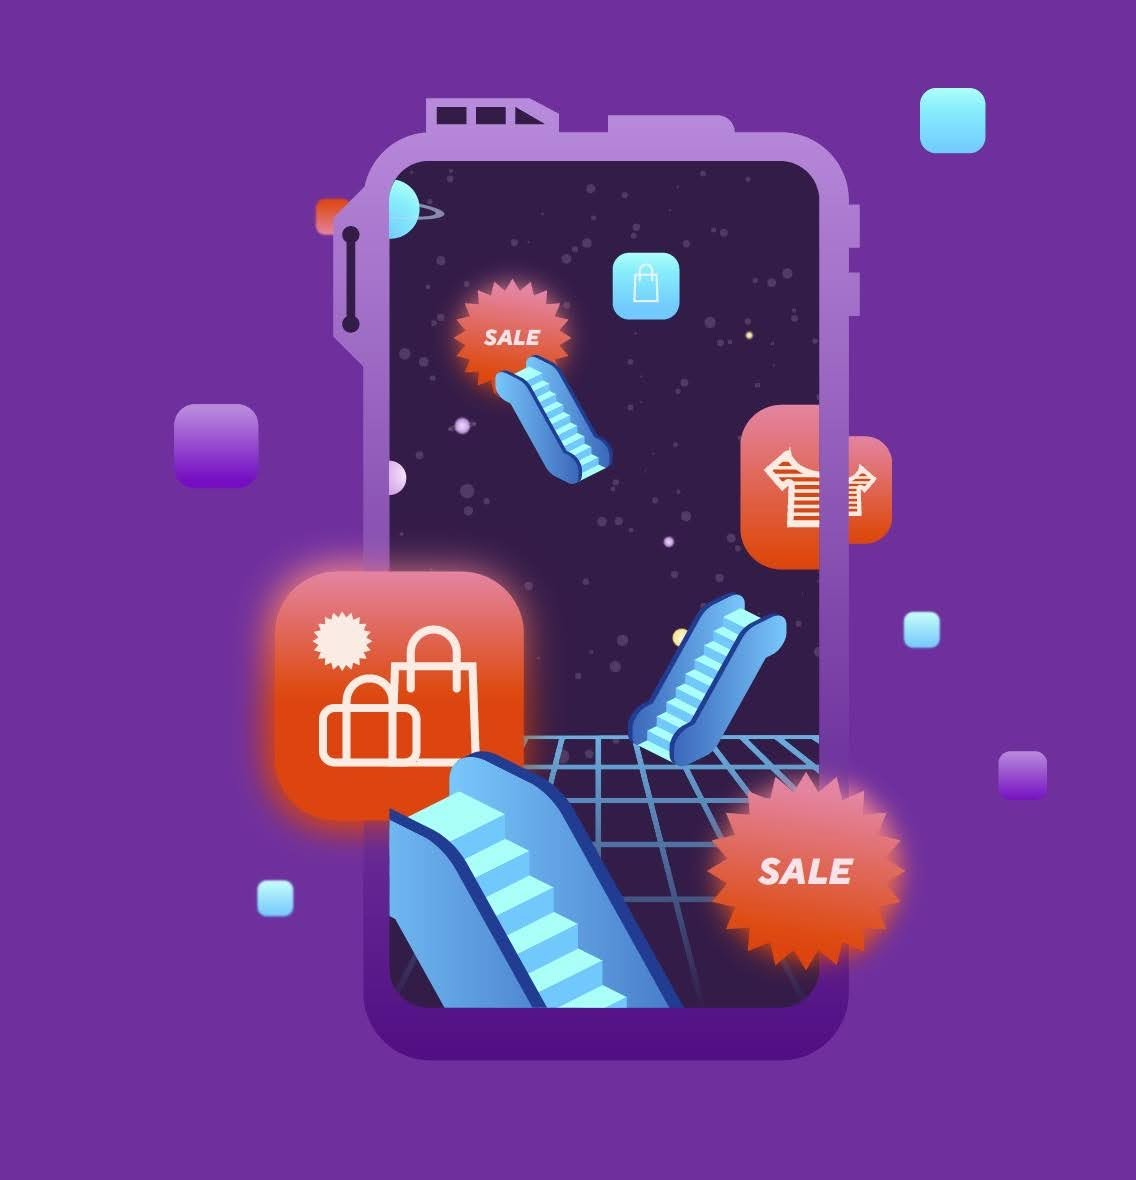 Product and Engineering Trends in Mobile Shopping Apps